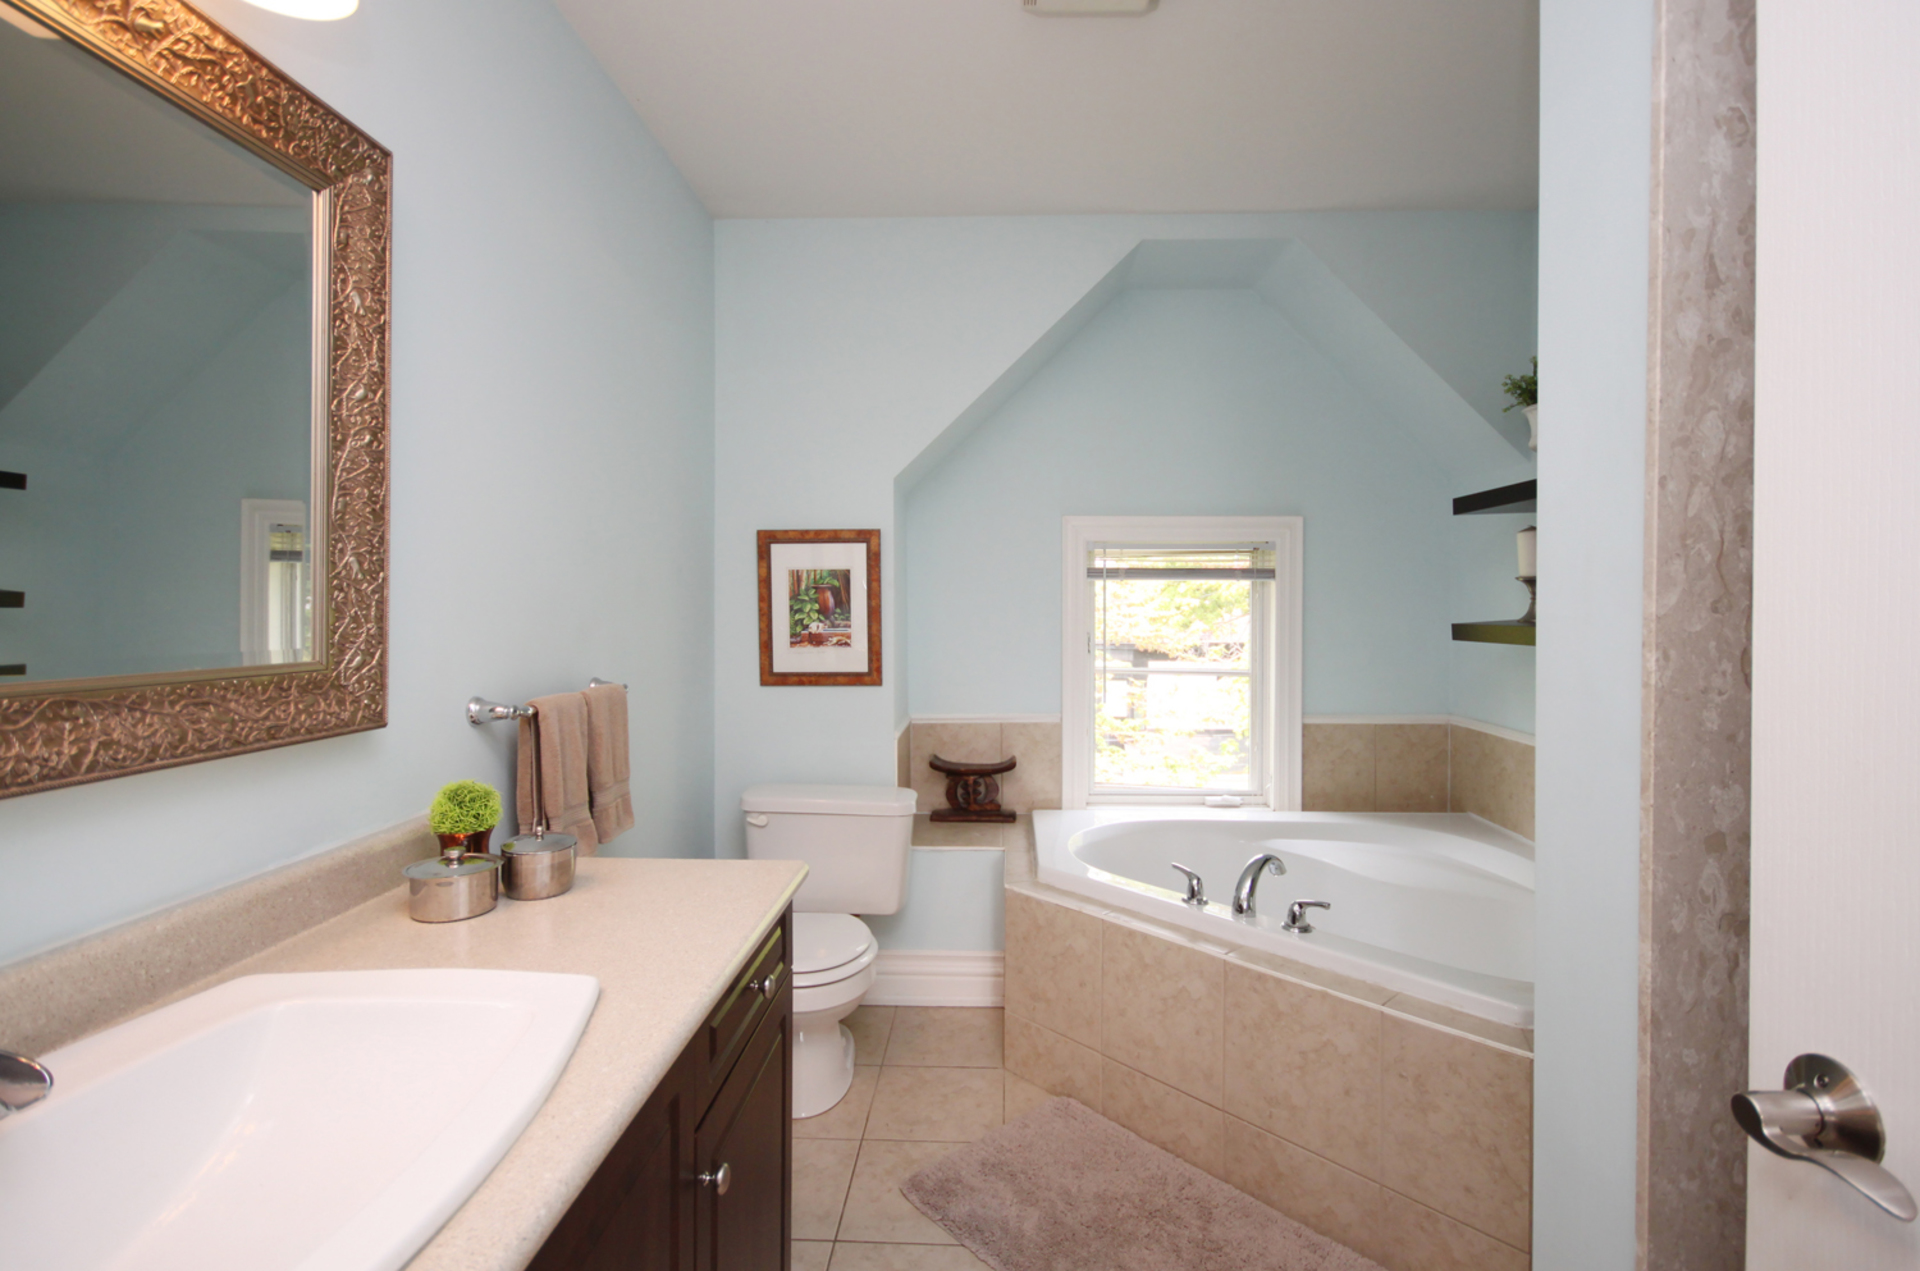 4 Piece Ensuite Bathroom at 7a Mcgee Street, South Riverdale, Toronto